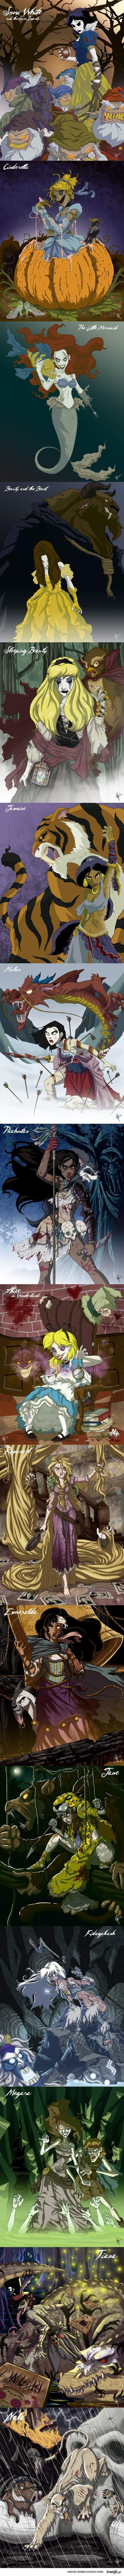 Disney Princesses Zombie style! (Tagline: When your prince doesn't show up, and you fend for yourself)